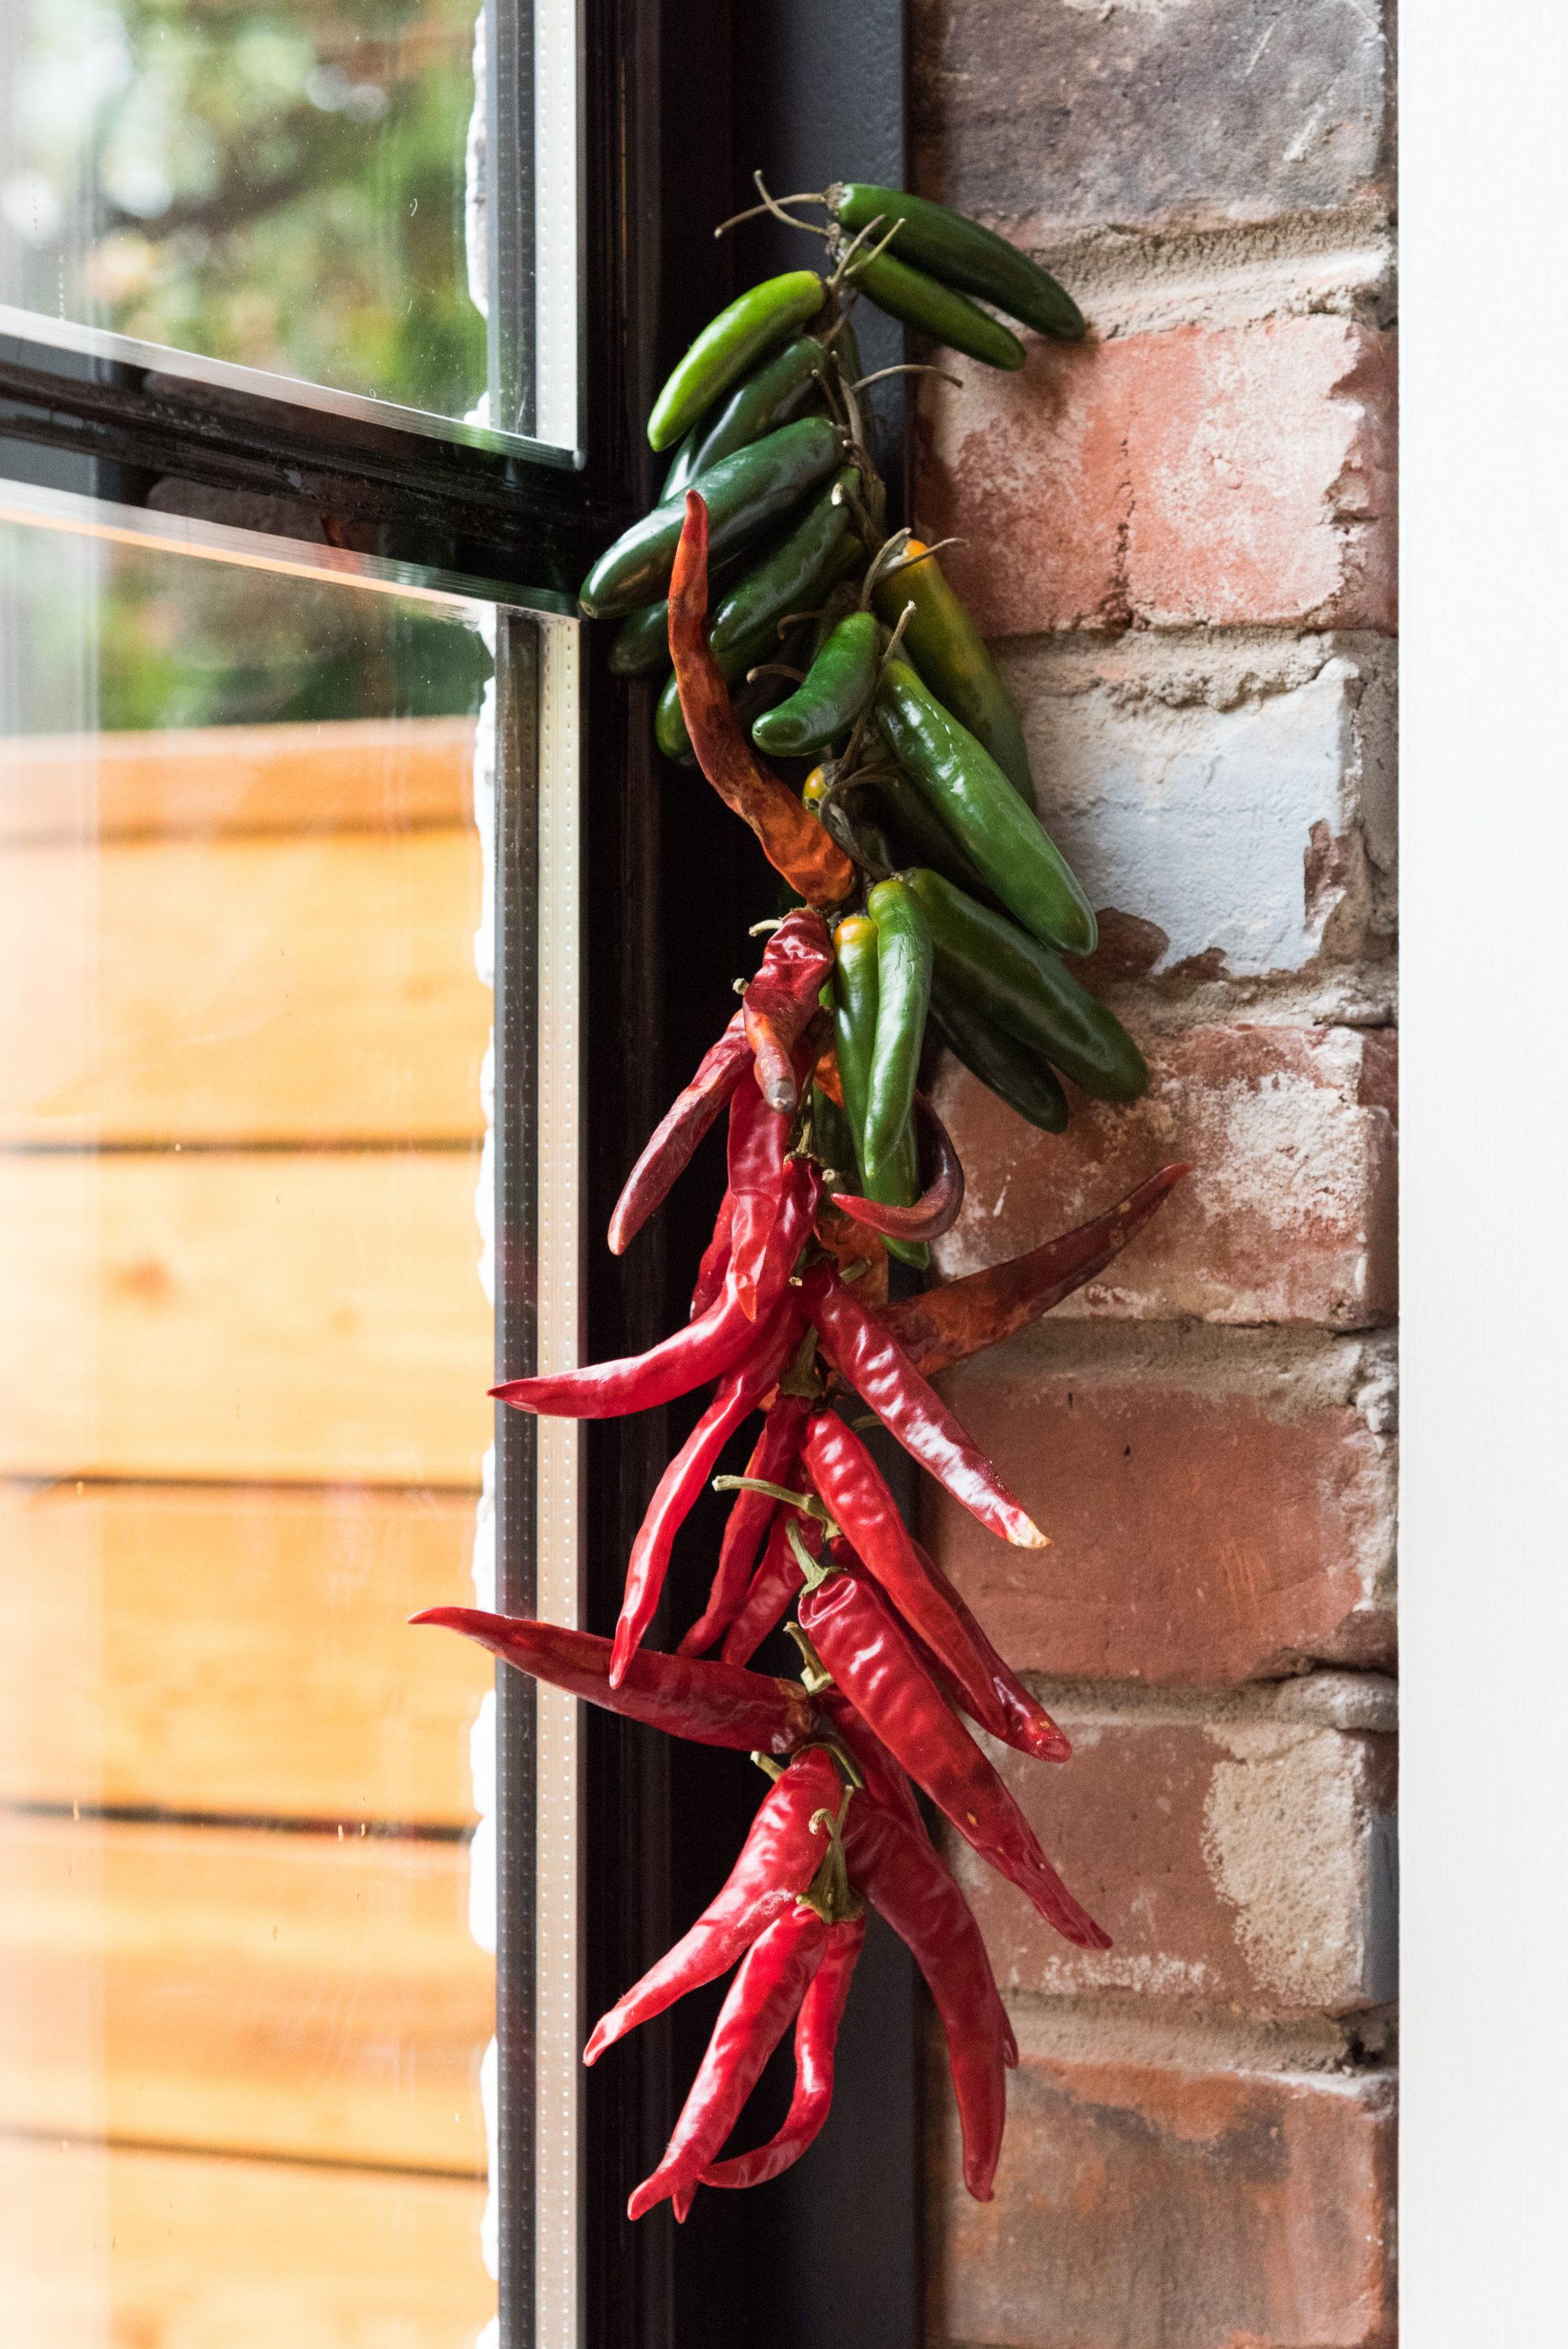 kitchen-diaries-toronto-chefs-at-home-rob-gentile-bar-buca-peppers